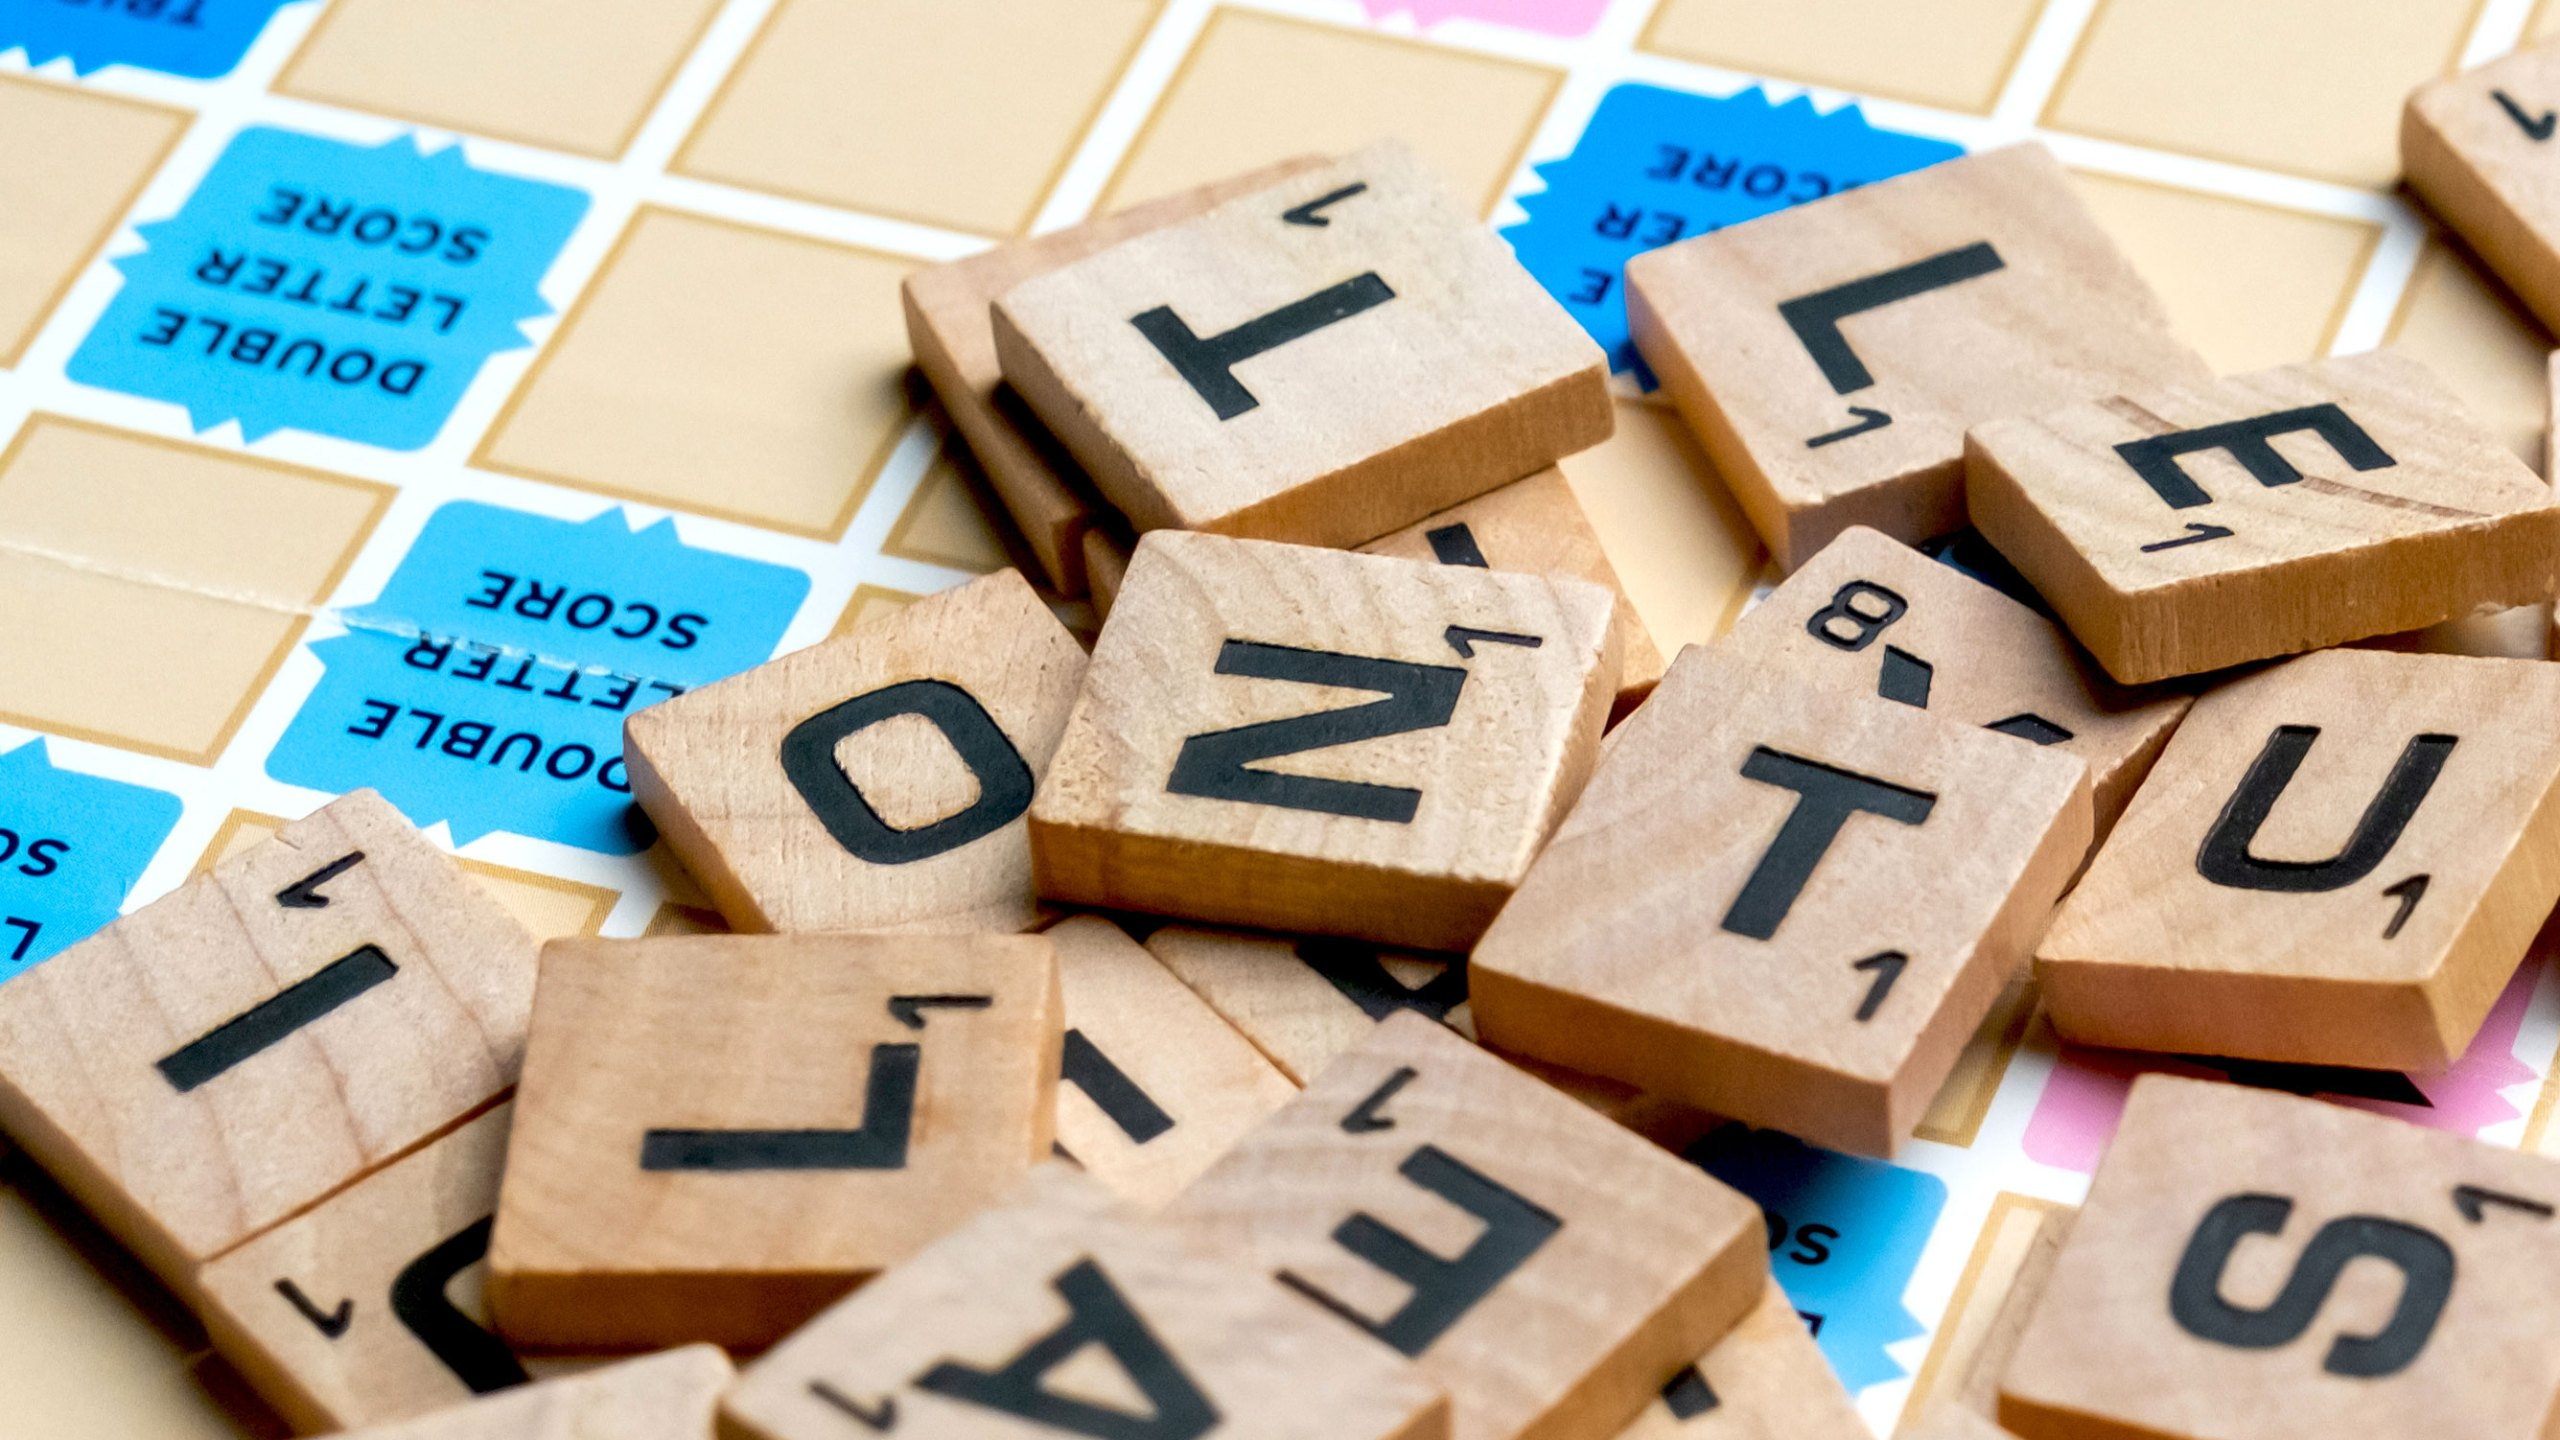 Picture of scrabble pieces on board